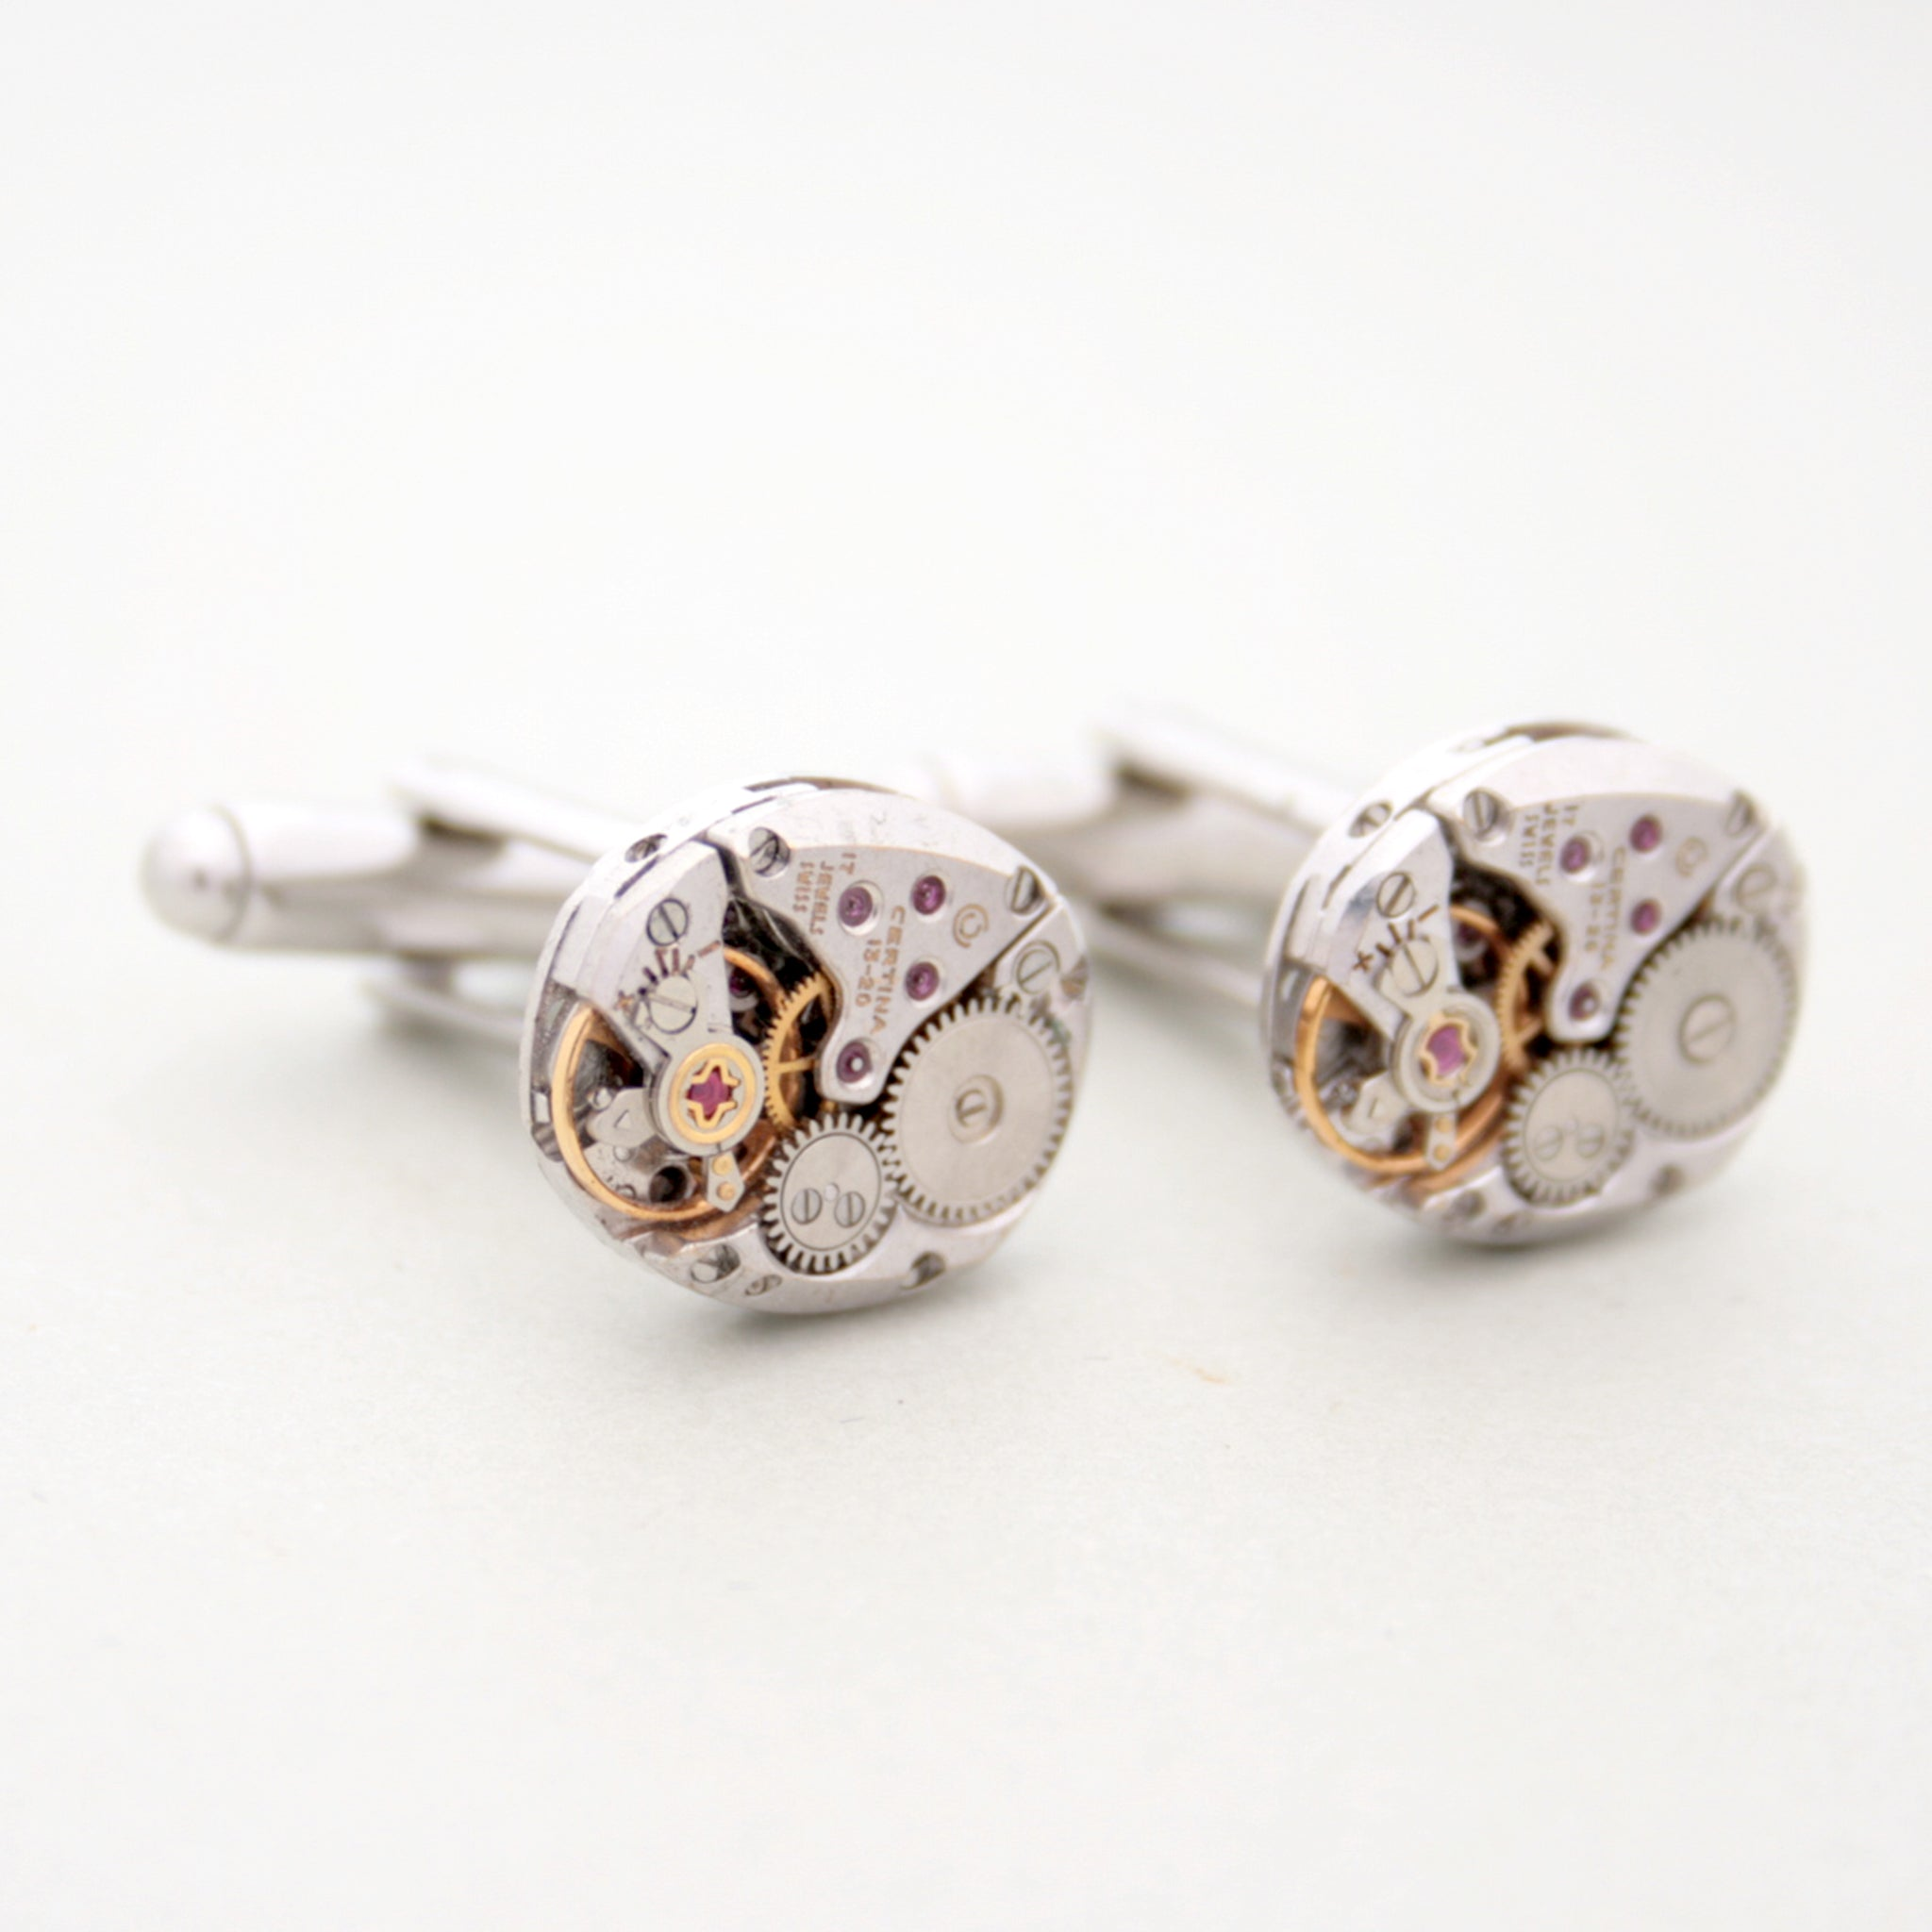 Deluxe Steampunk Cufflinks made of real watch movements on sterling backs